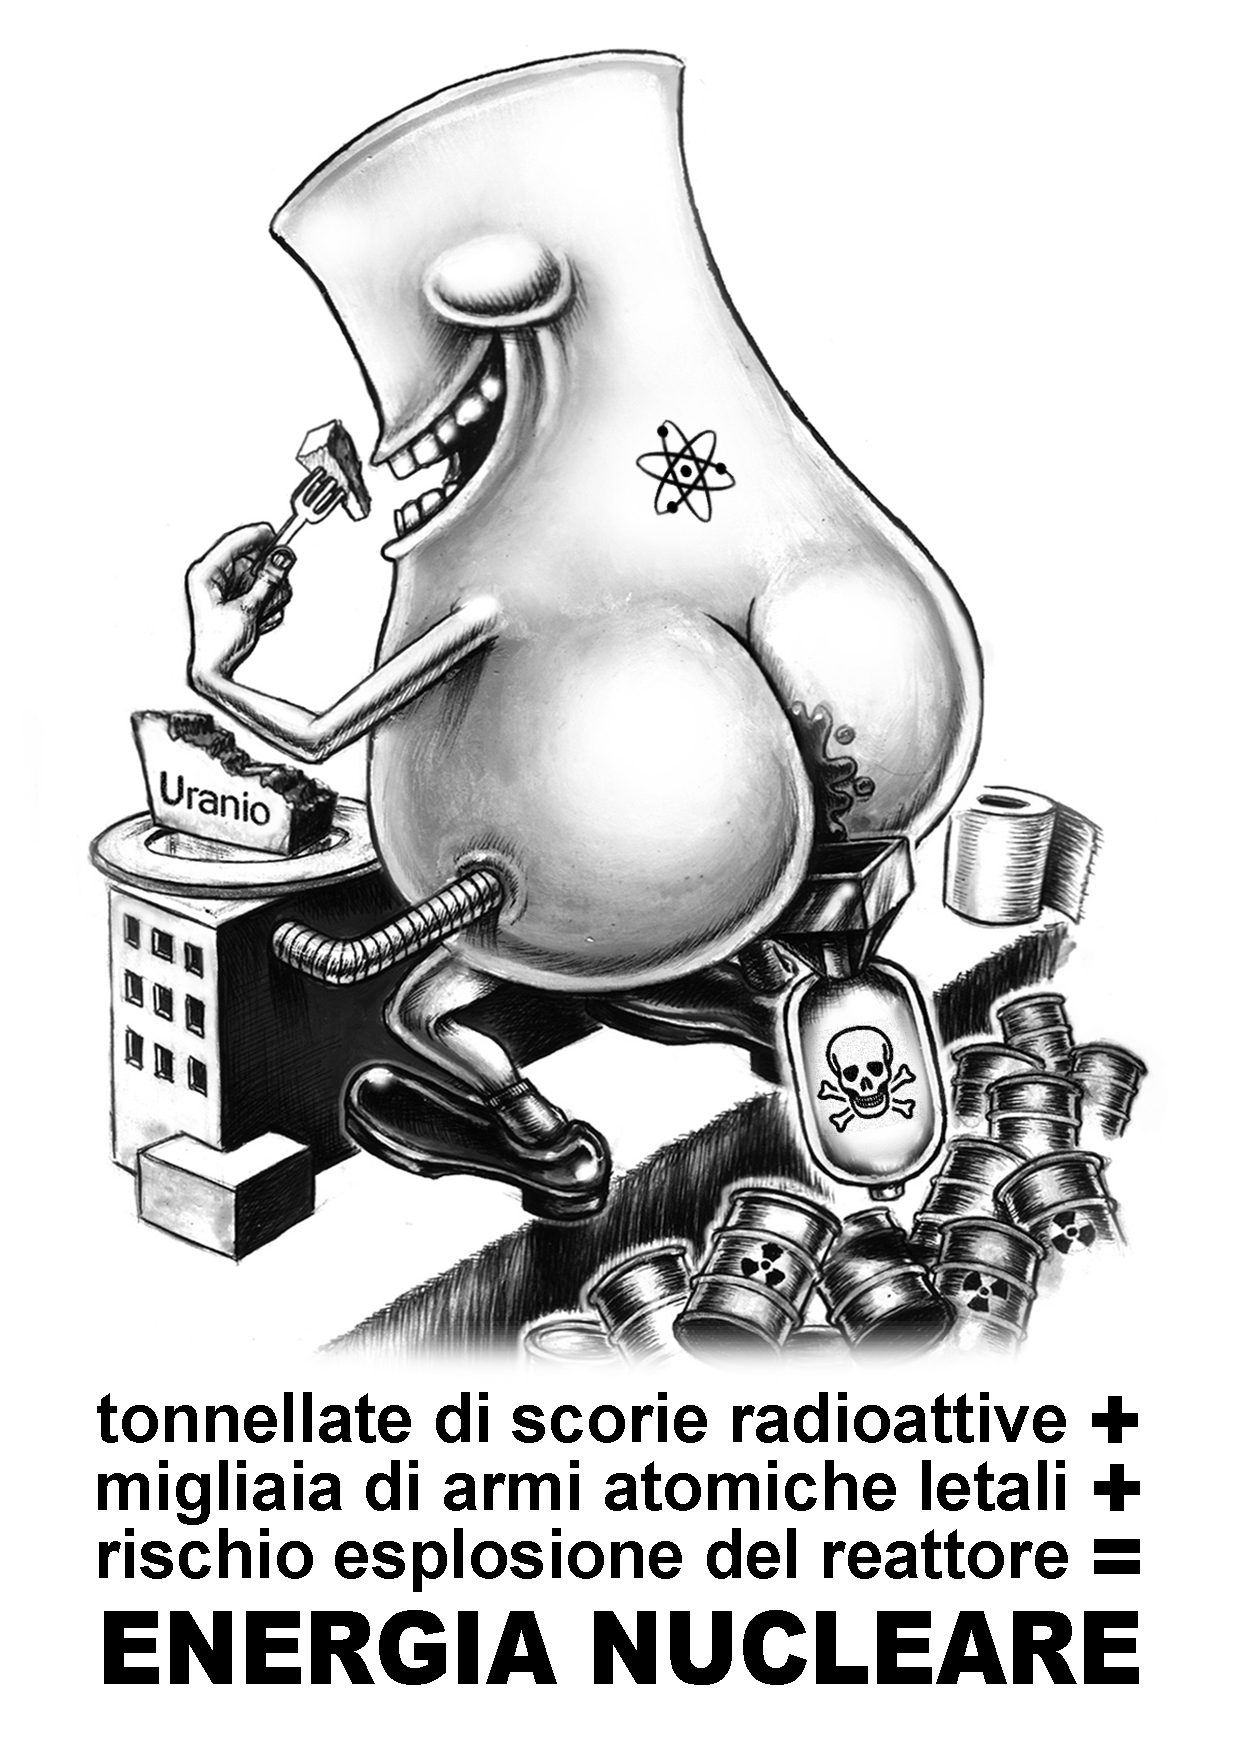 energia nucleare - graficanera - NO COPYRIGHT